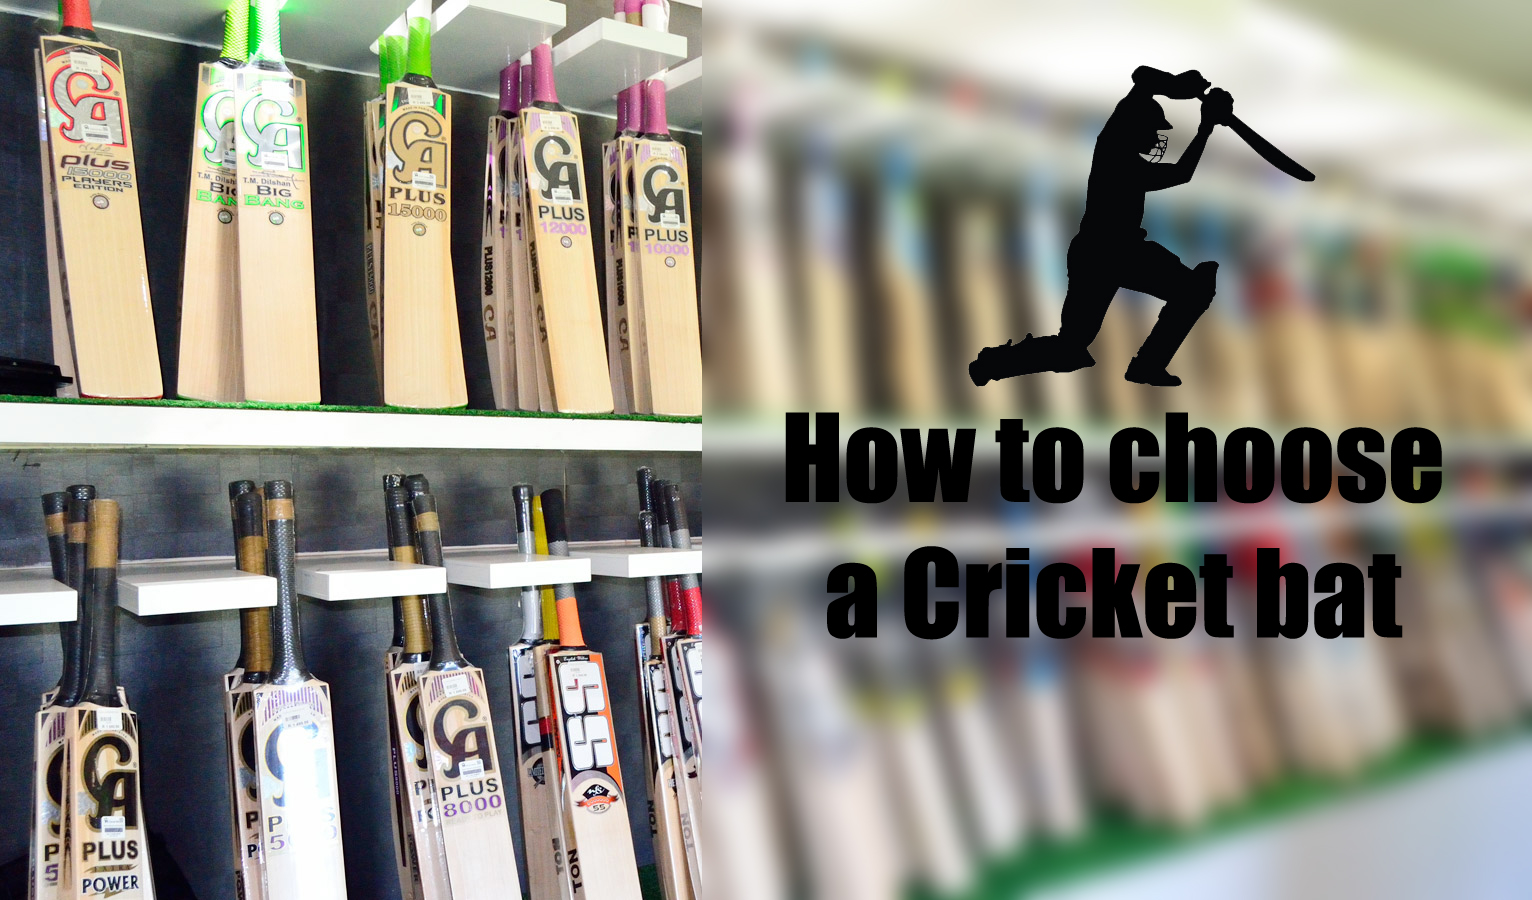 How-to-choose-a-cricket-bat